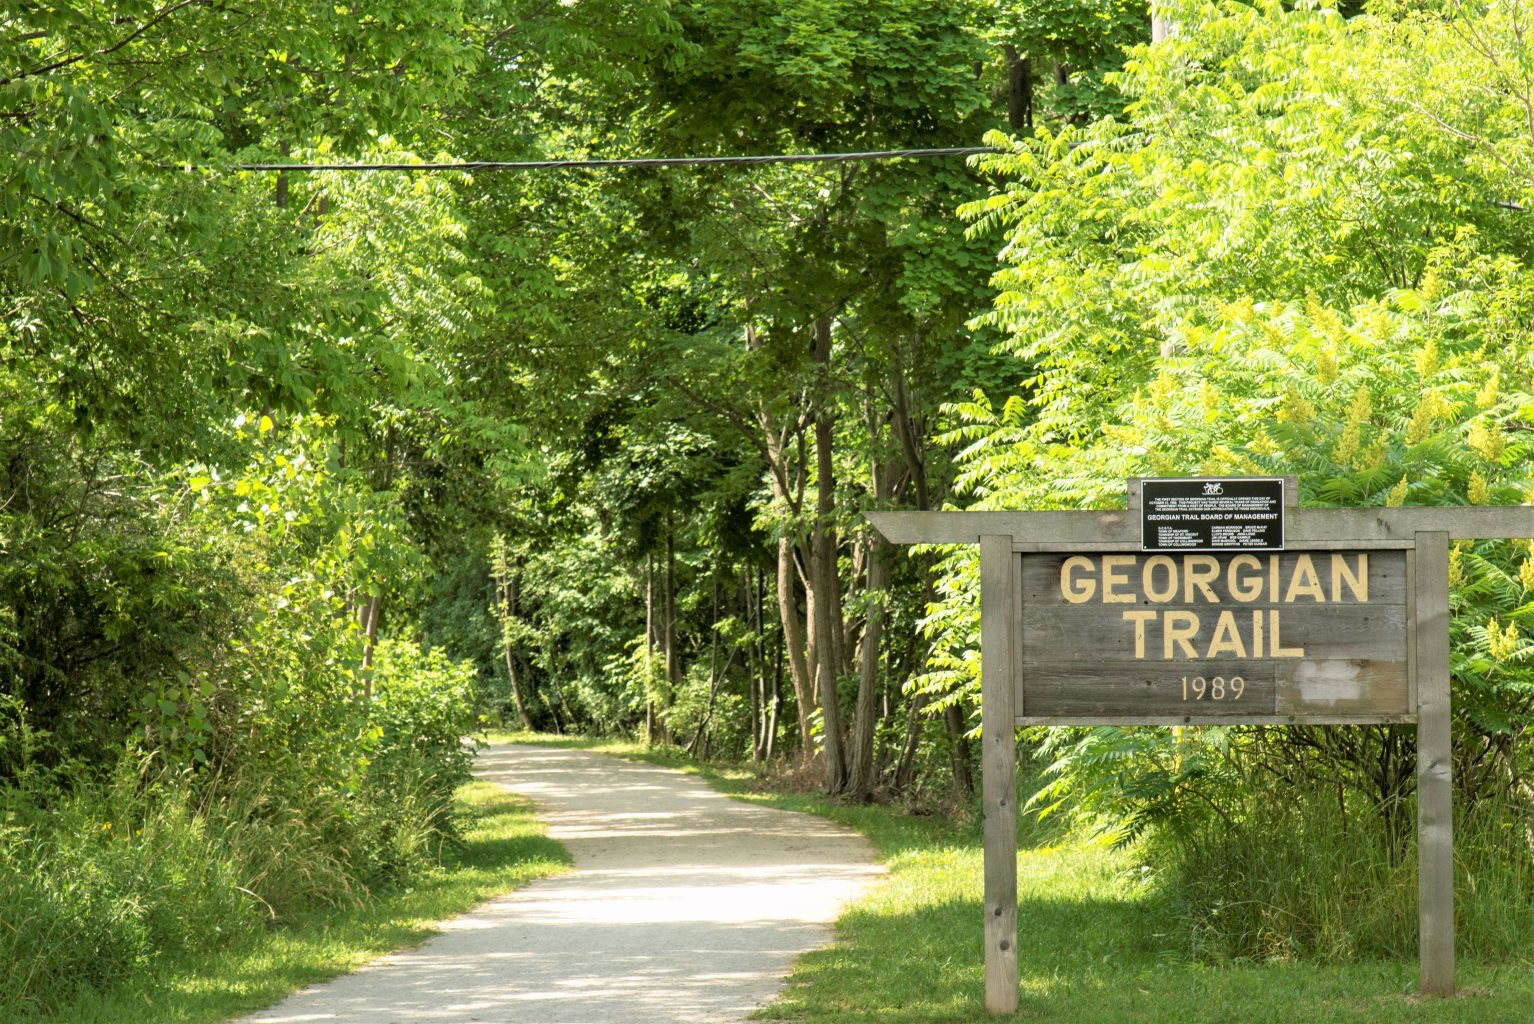 Georgian Trail - Collingwood Section